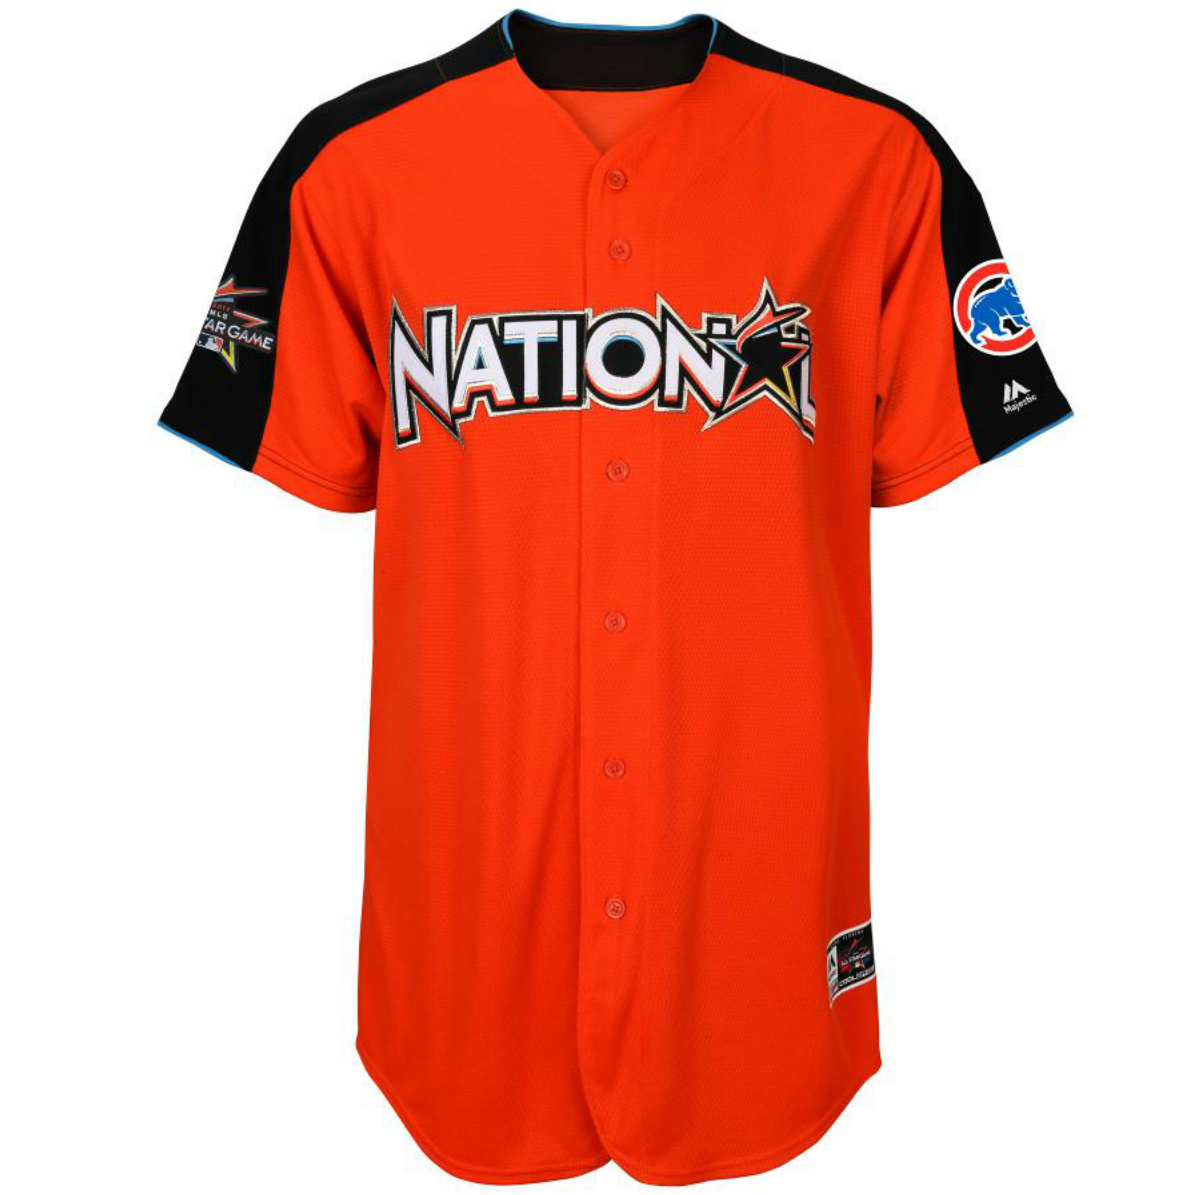 official photos 30e3d 15edb MLB Unveils 2017 Special Event Jerseys and Caps - Bleed ...